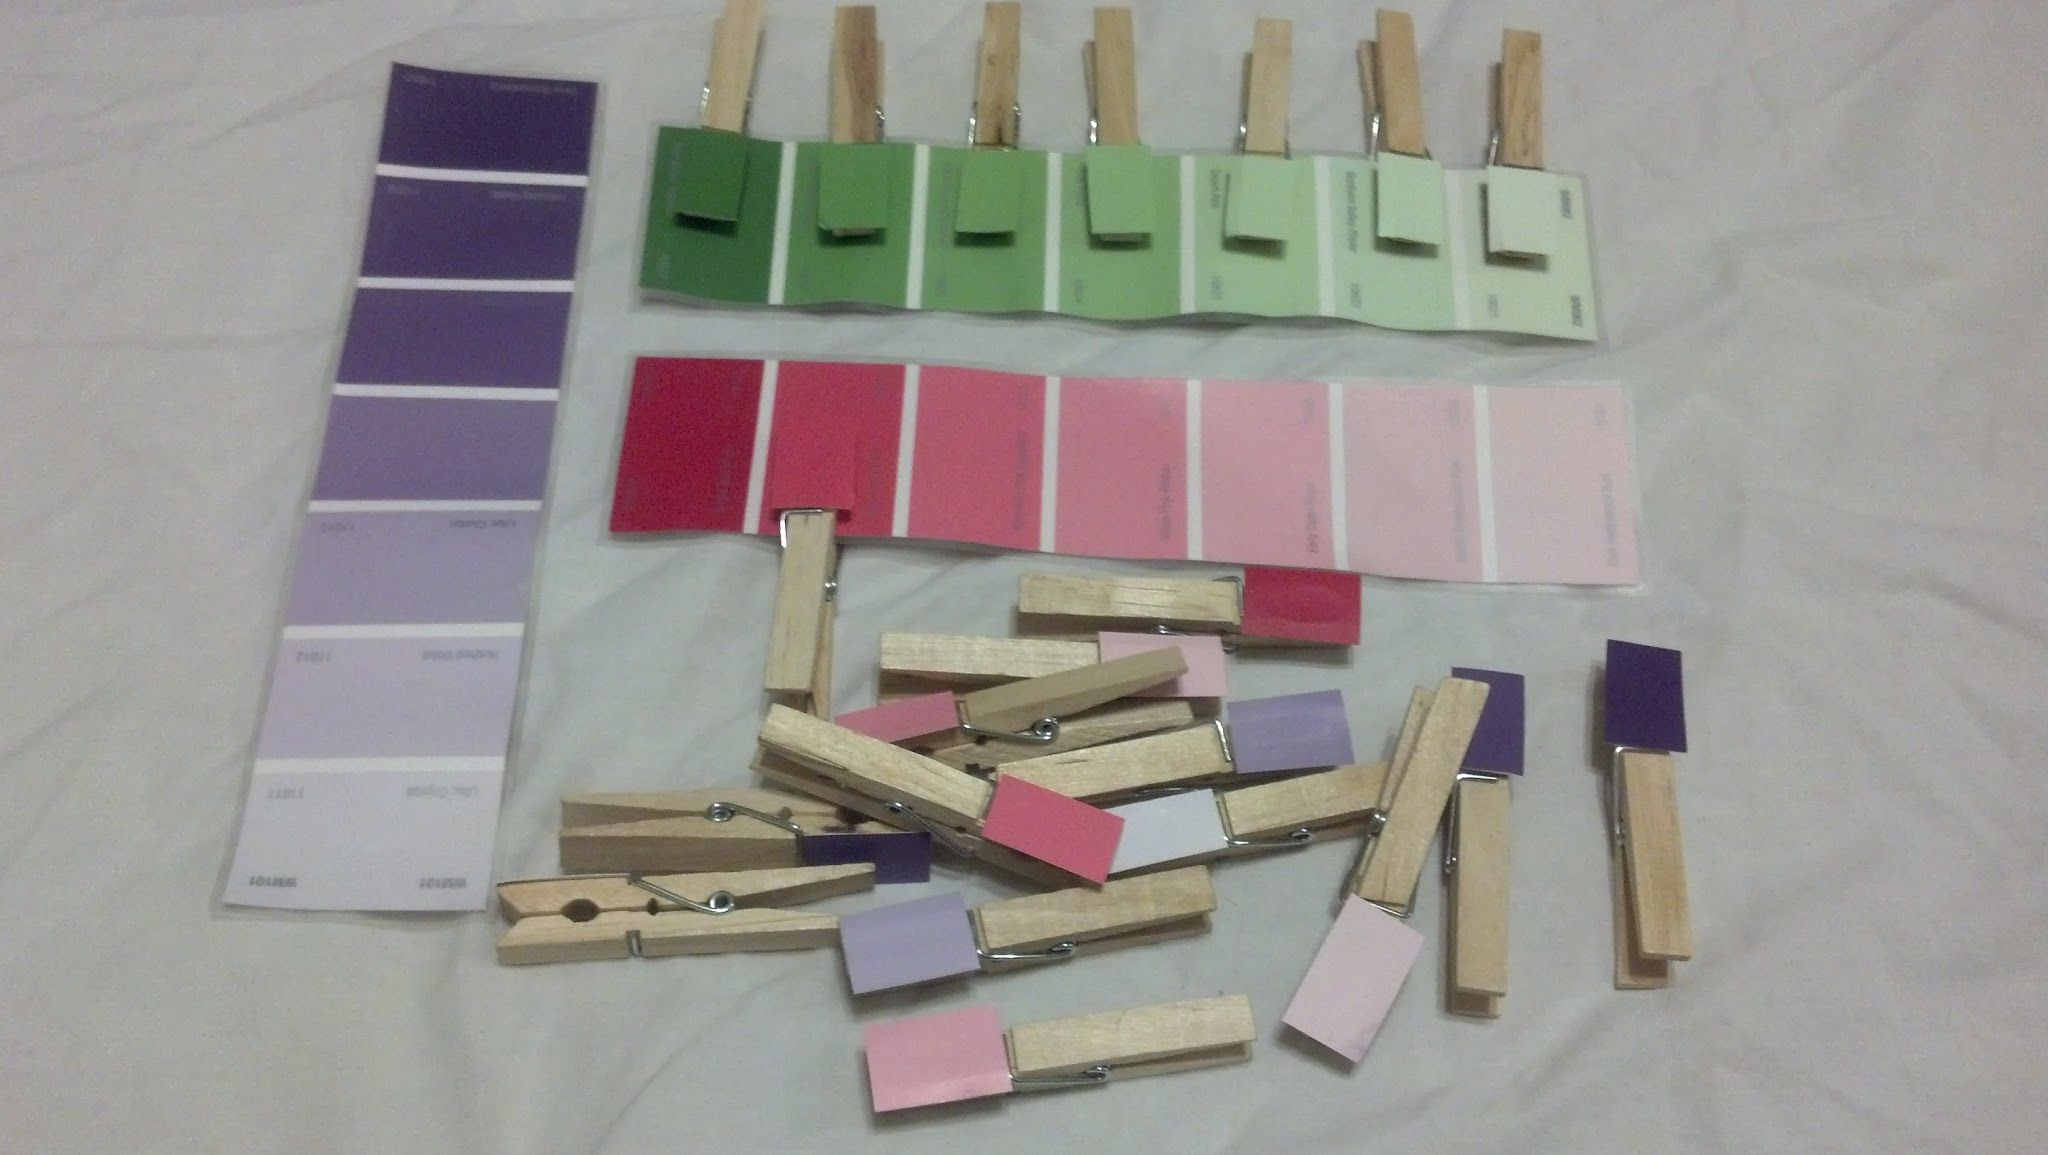 Color Match Pins. Please laminate paint swatches. Paint swatches can be gradient or individual colors.